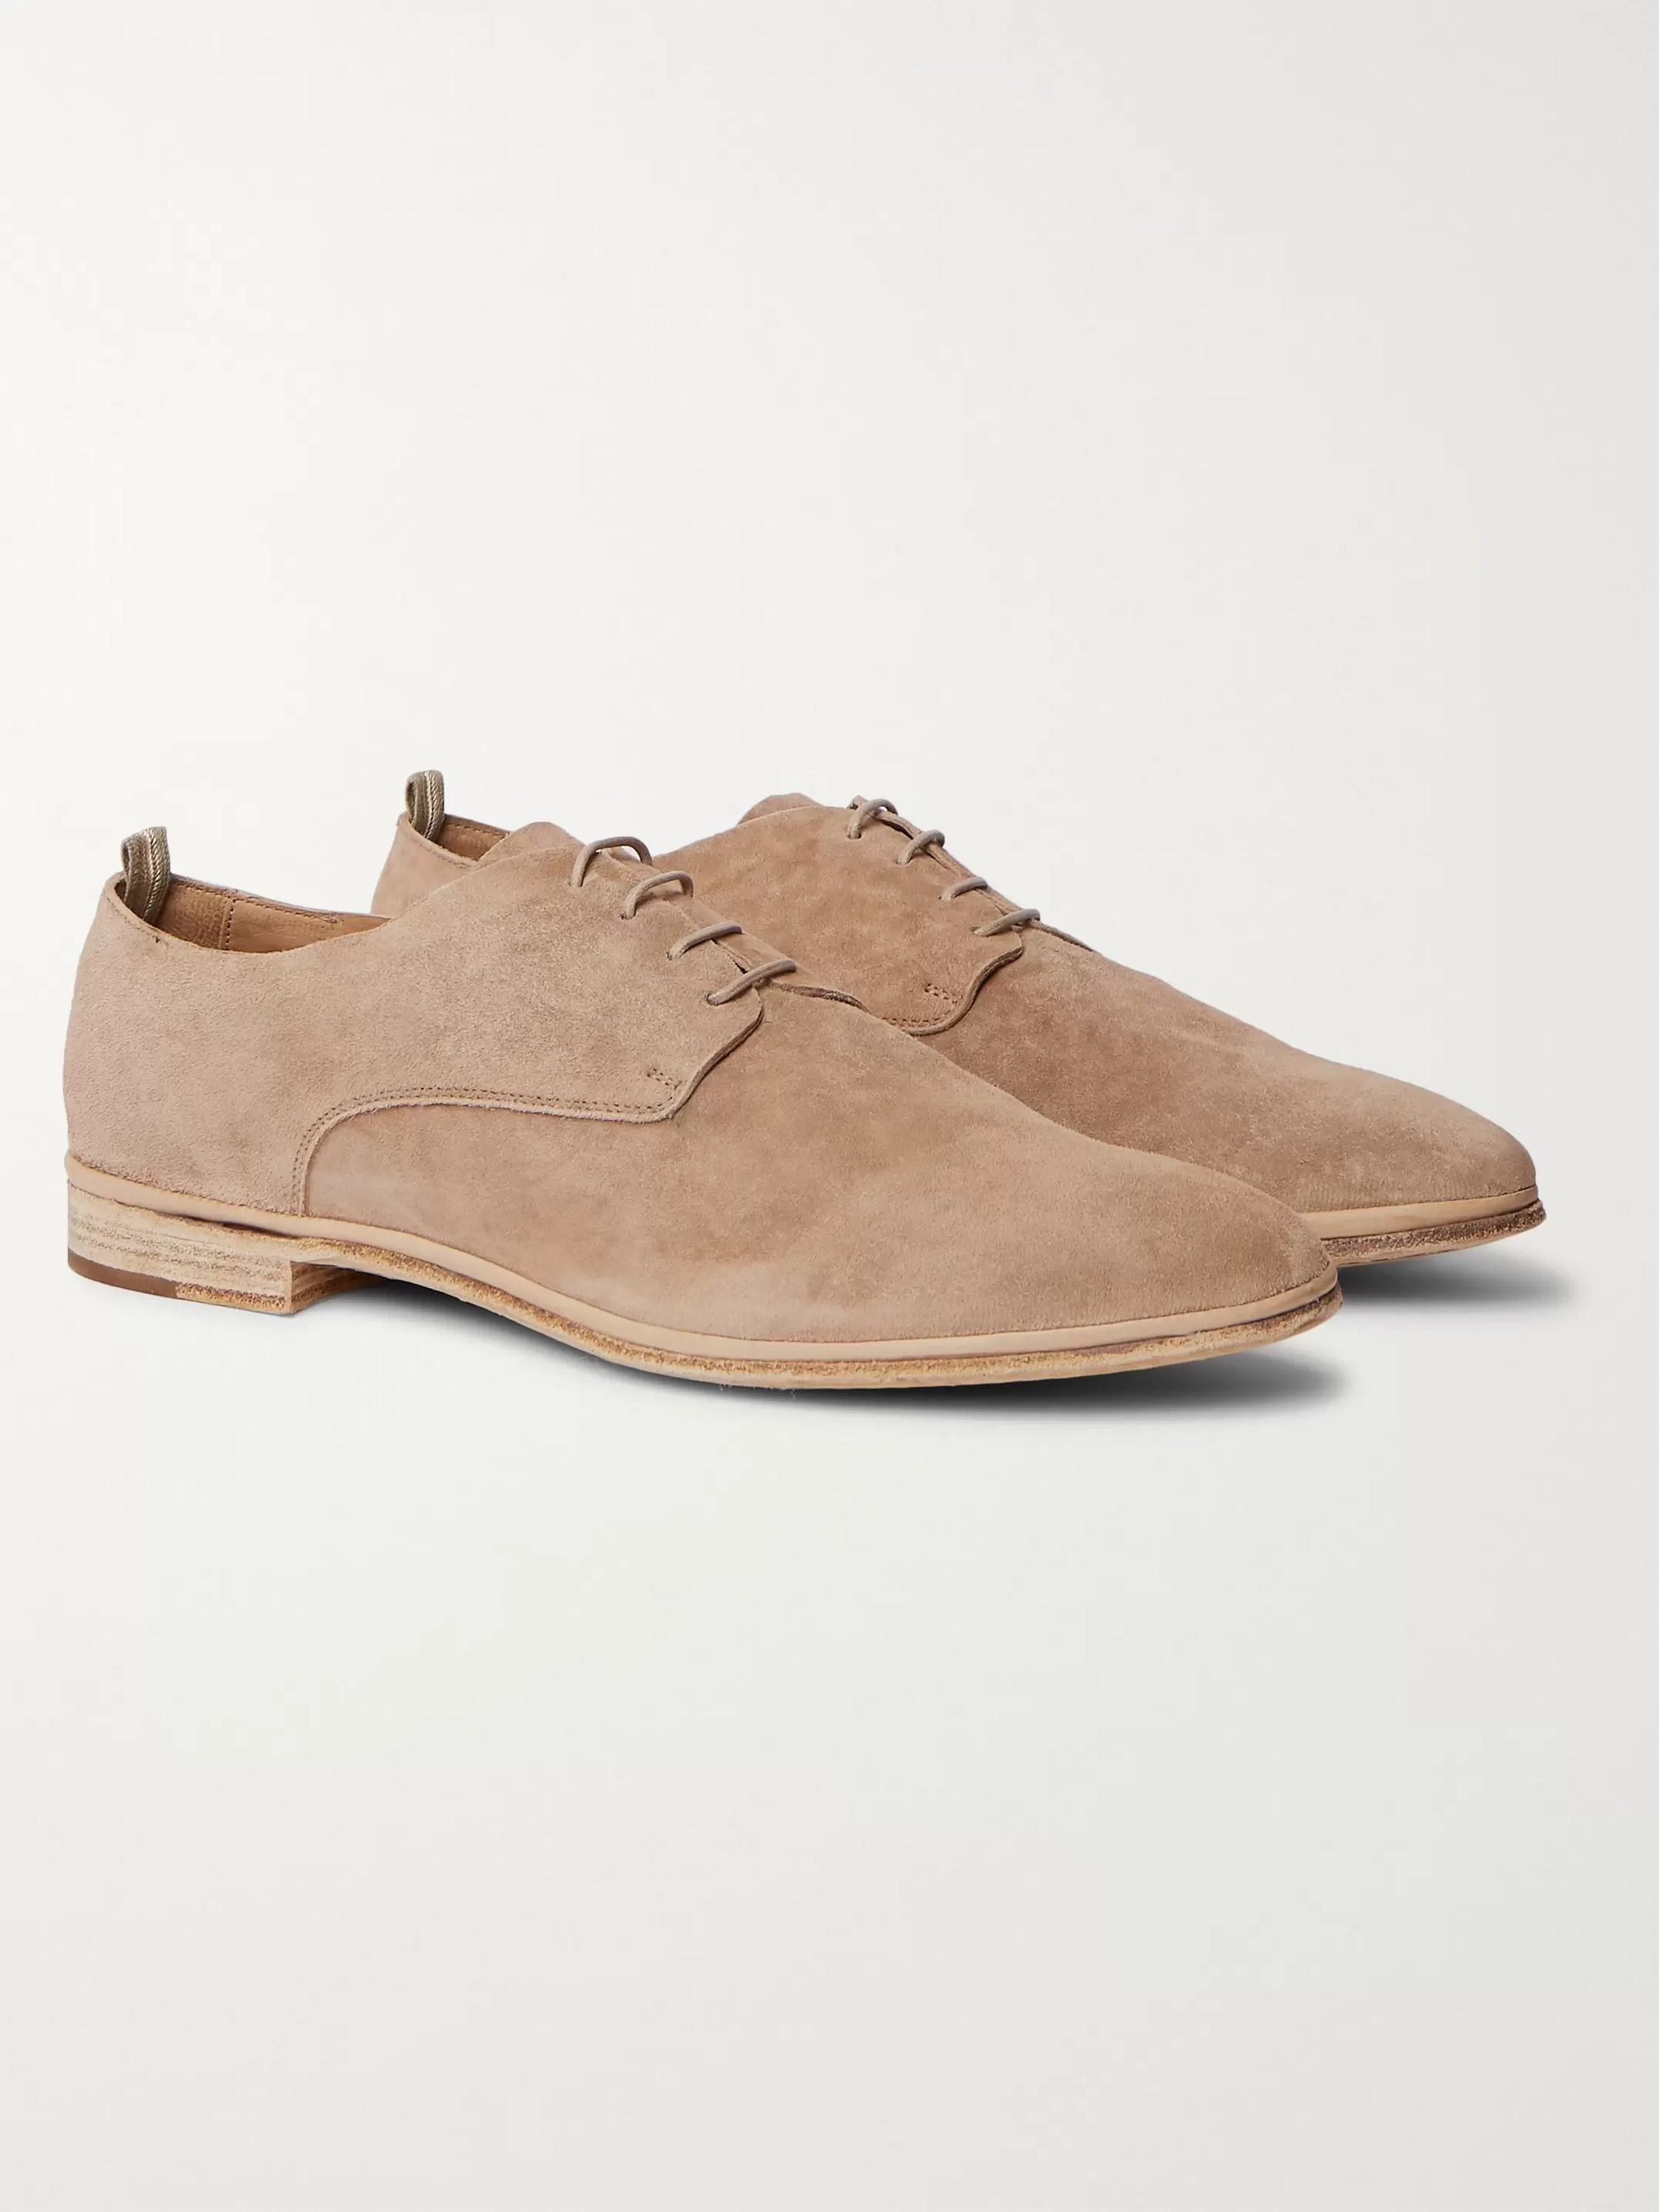 Officine Creative California Leather Oxford Shoes